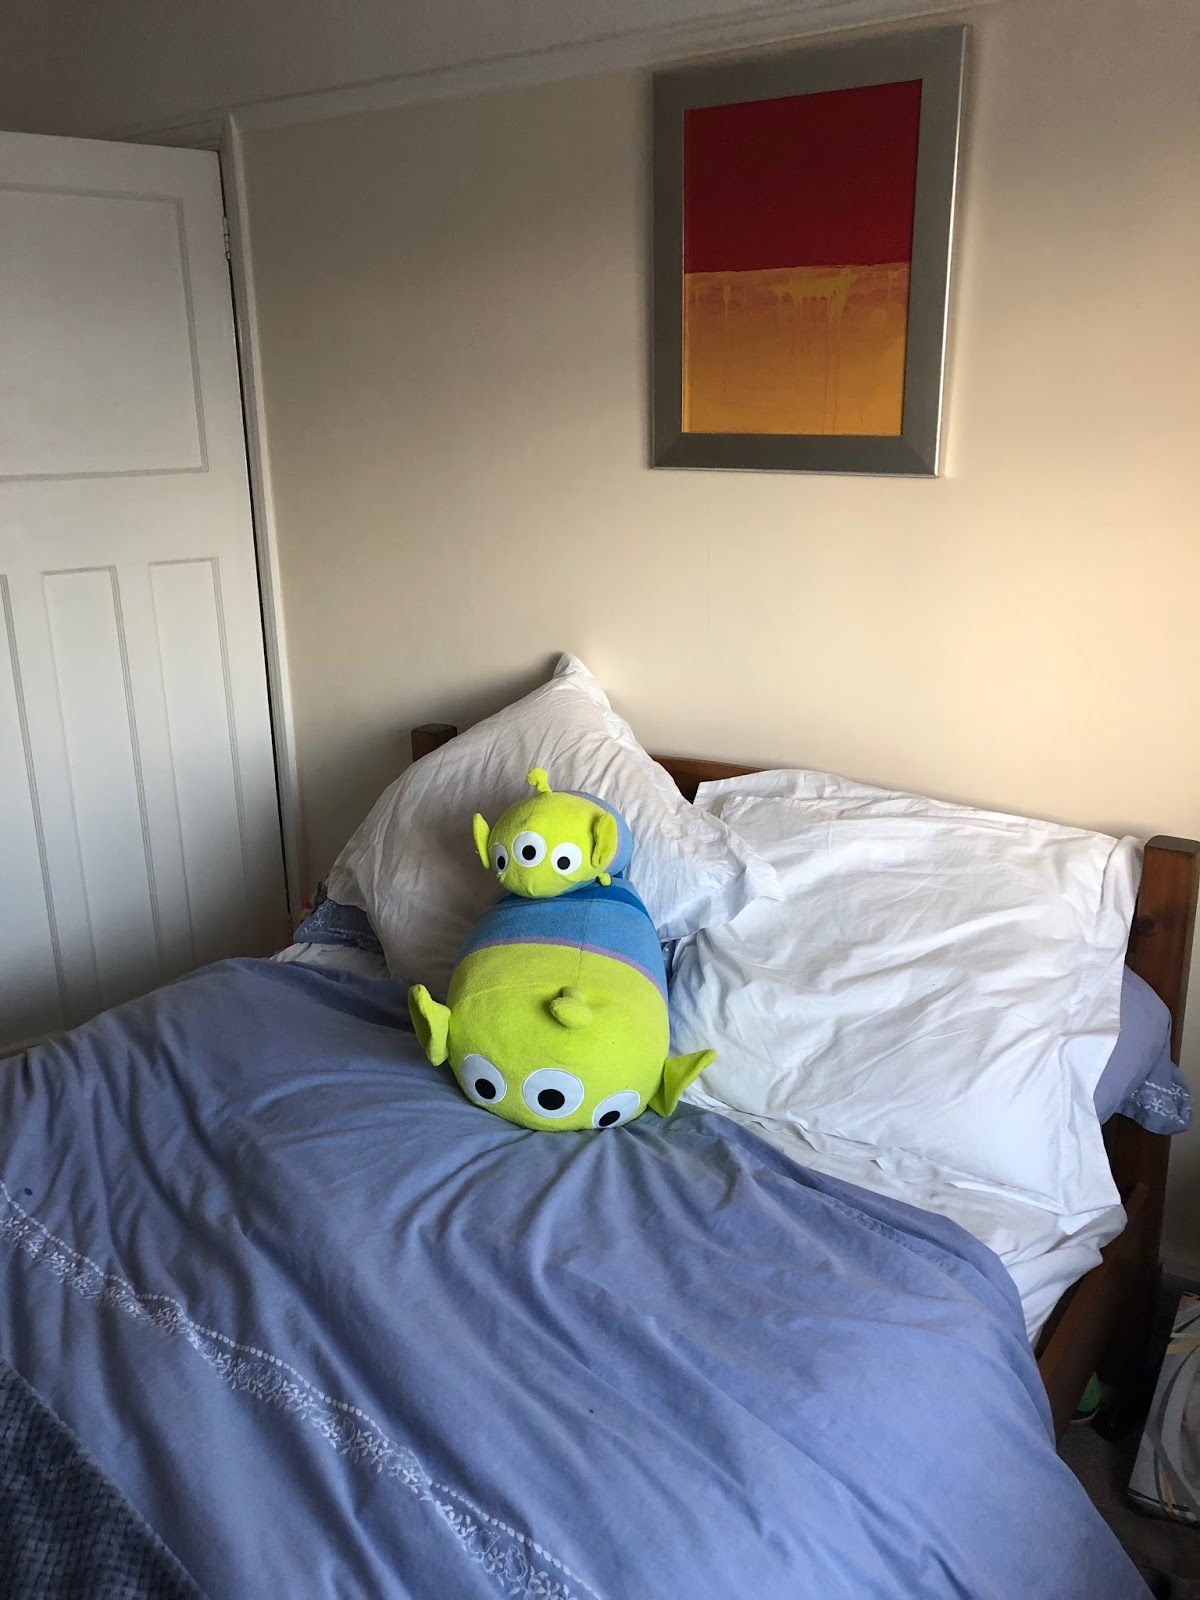 Toys on a bed